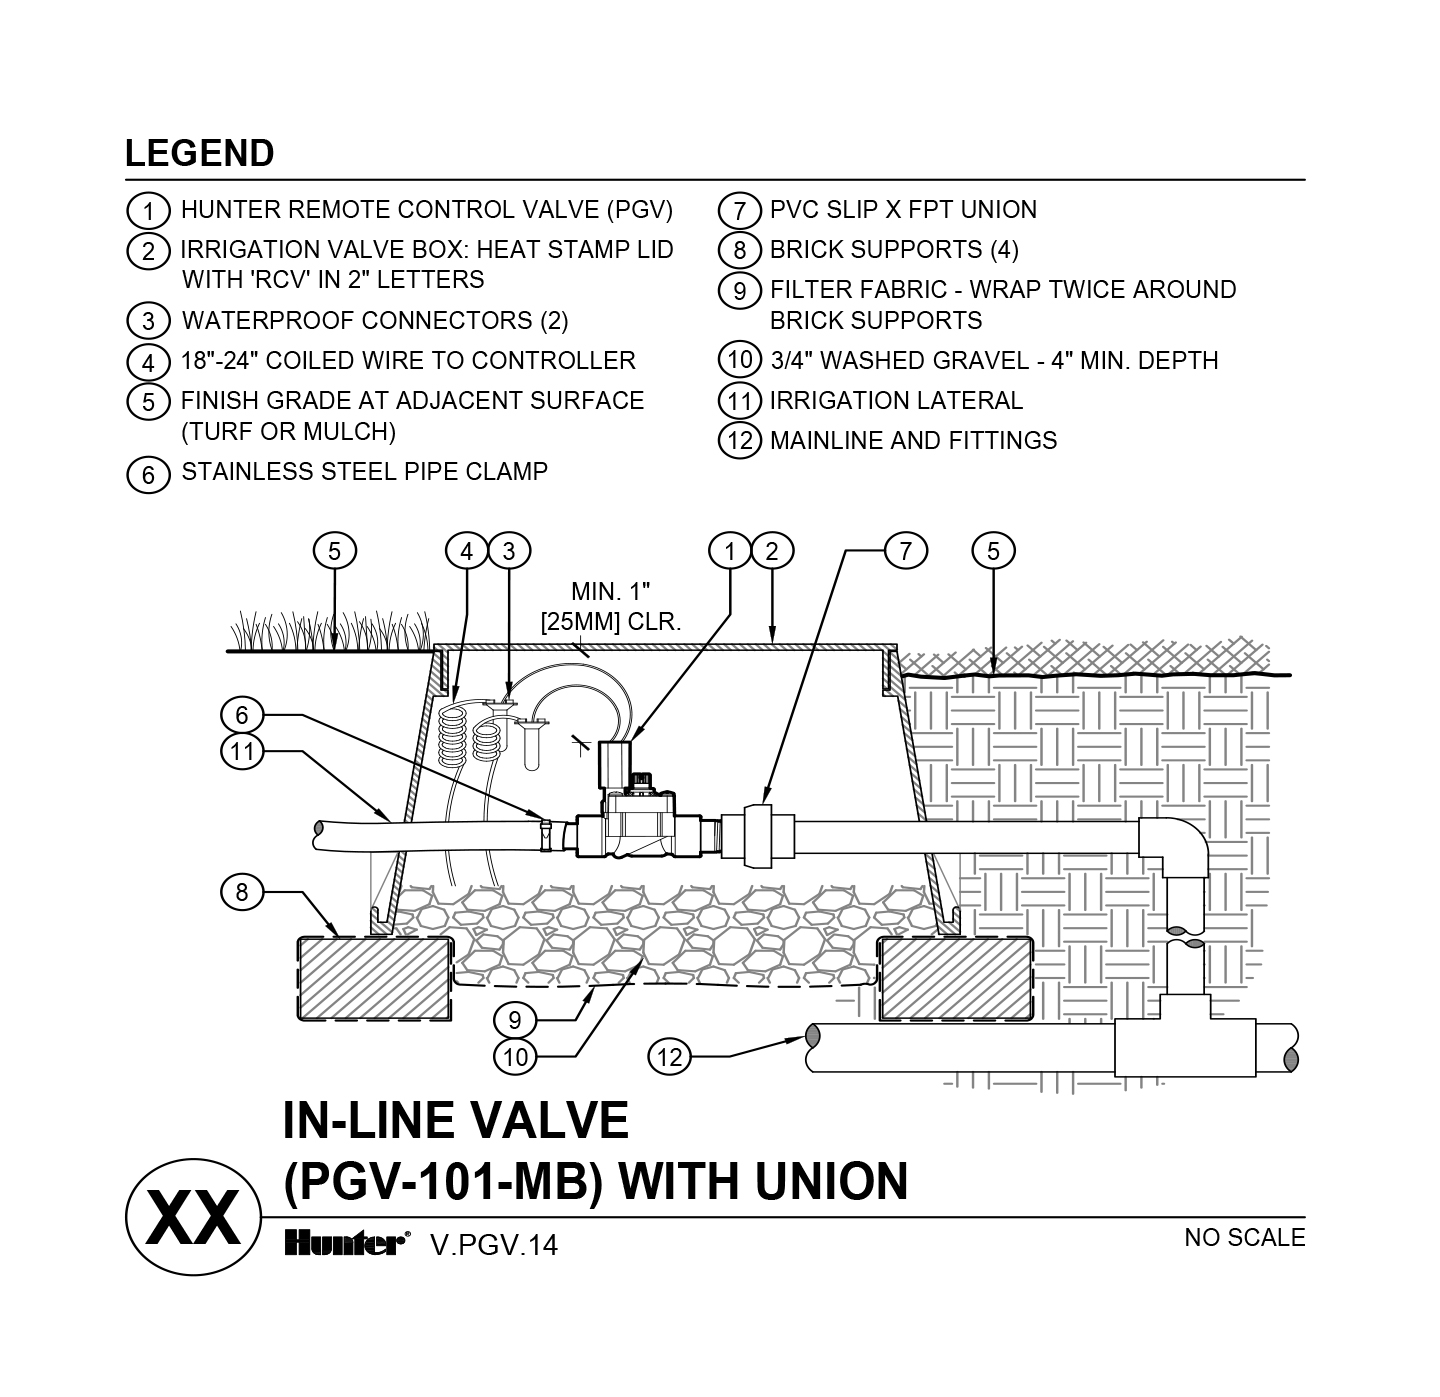 CAD - PGV-101-MB with unions